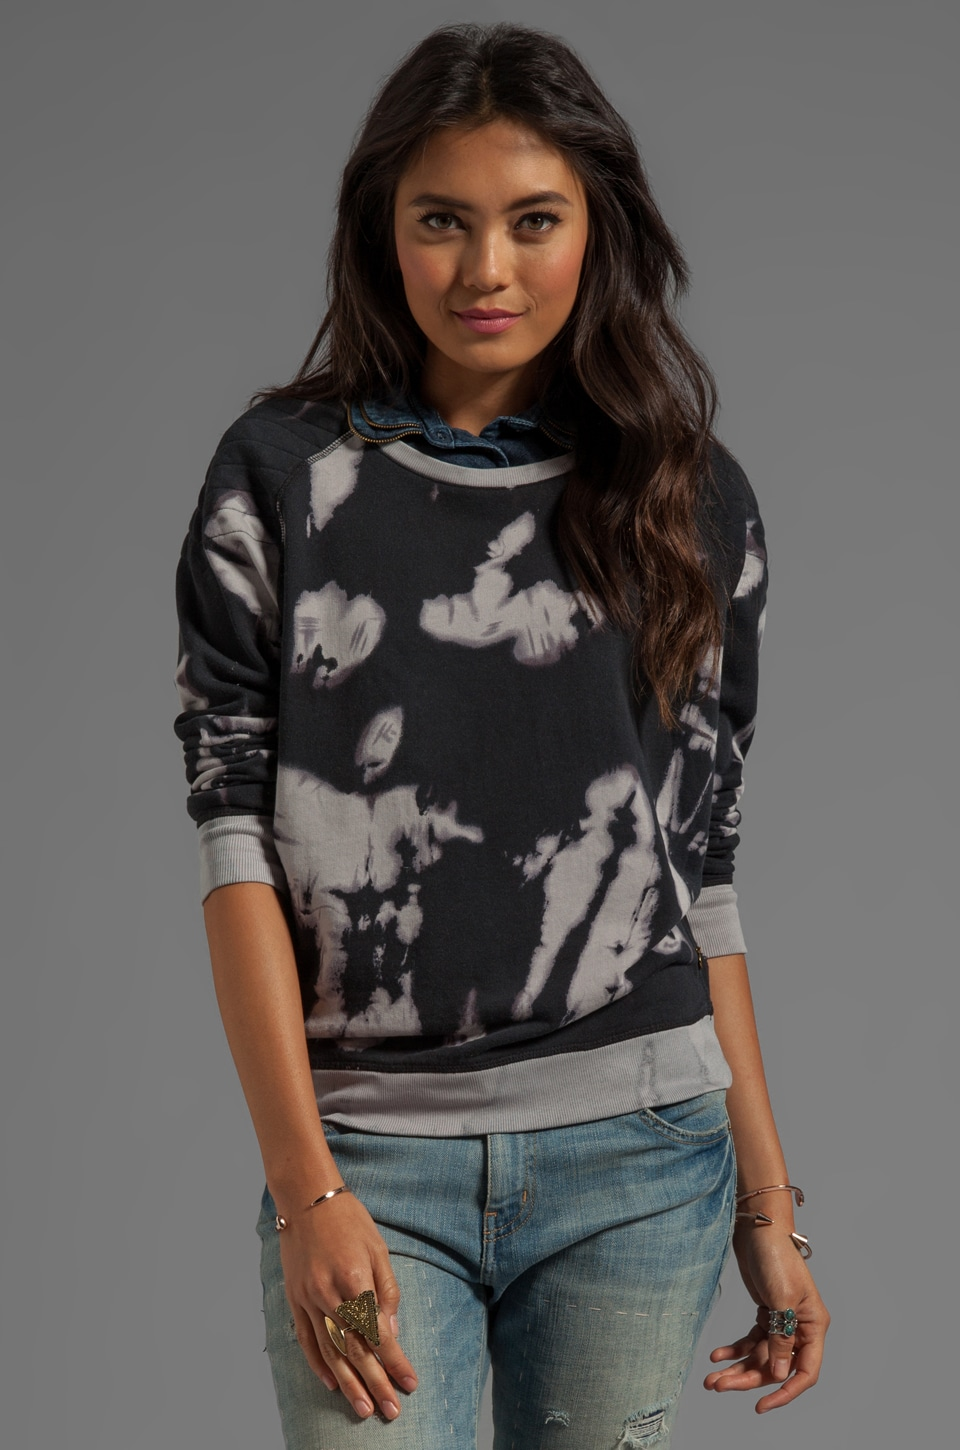 Maison Scotch Moto Tie Dye Sweatshirt in Black